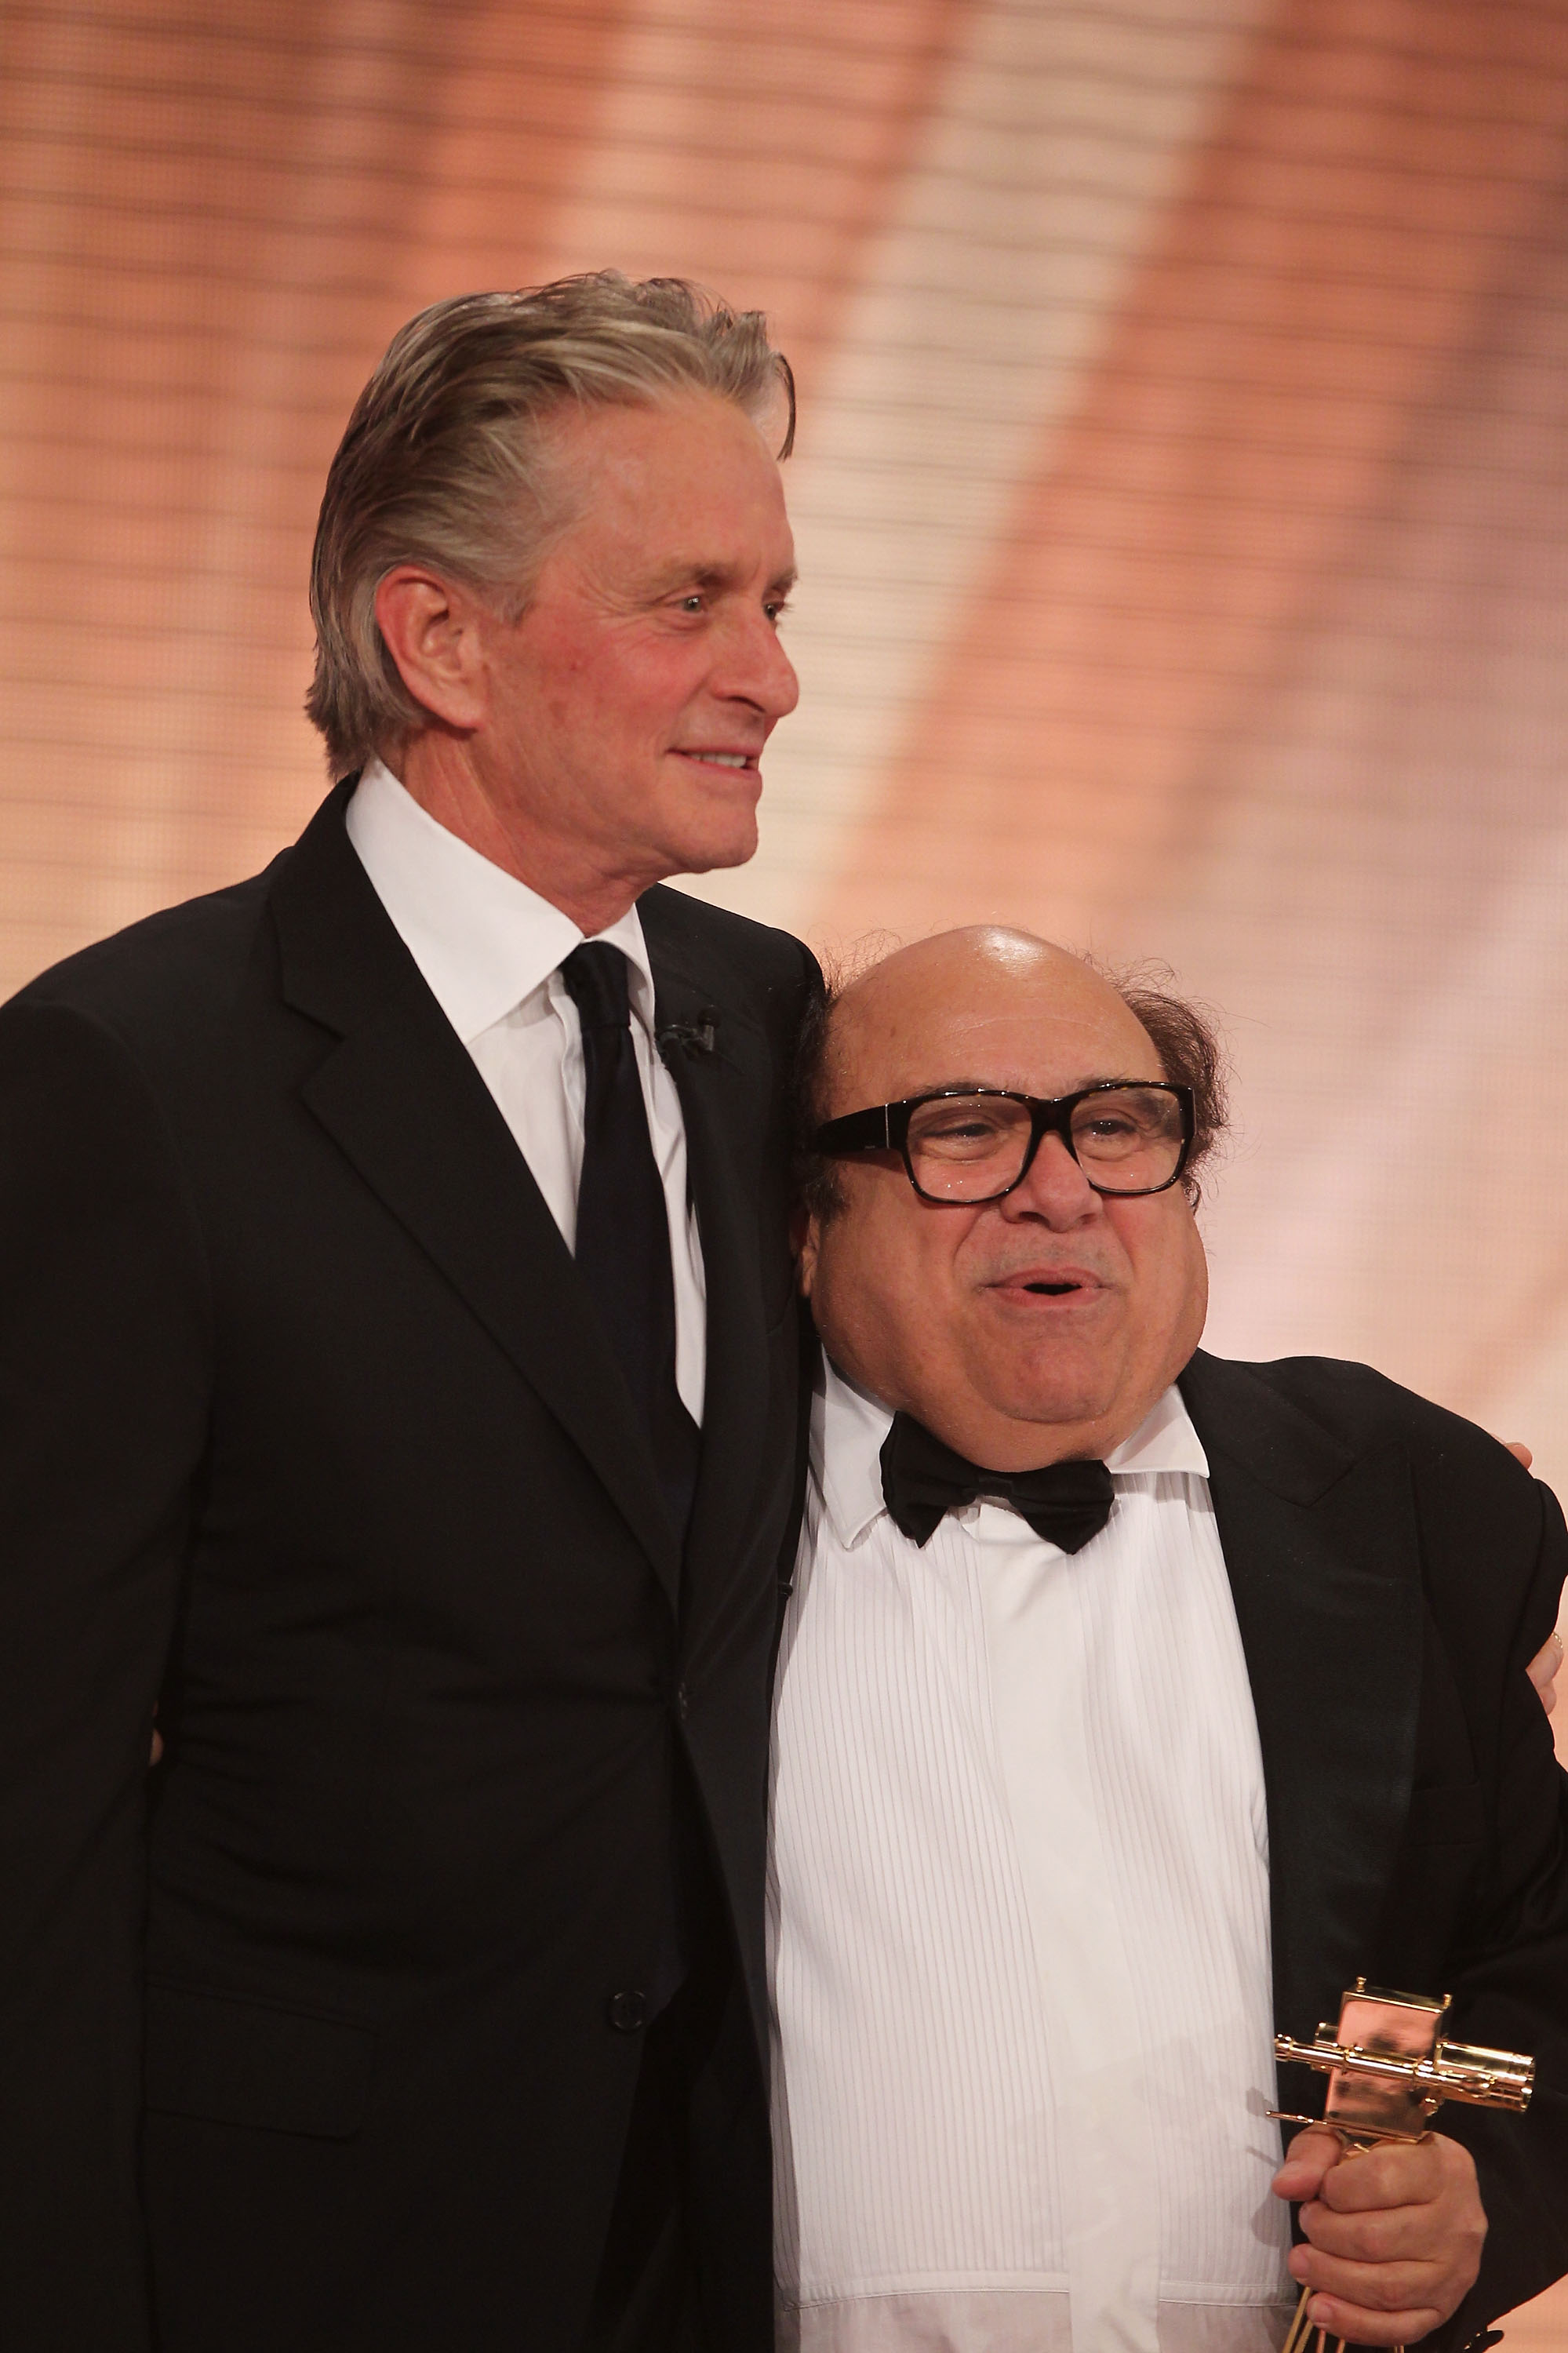 Michael Douglas hands over the award to Danny Devito for 'Lifetimeachievement International' during the Goldene Kamera 2010 Award at the Axel Springer Verlag on January 30, 2010 in Berlin, Germany. (Photo by Andreas Rentz/Getty Images)